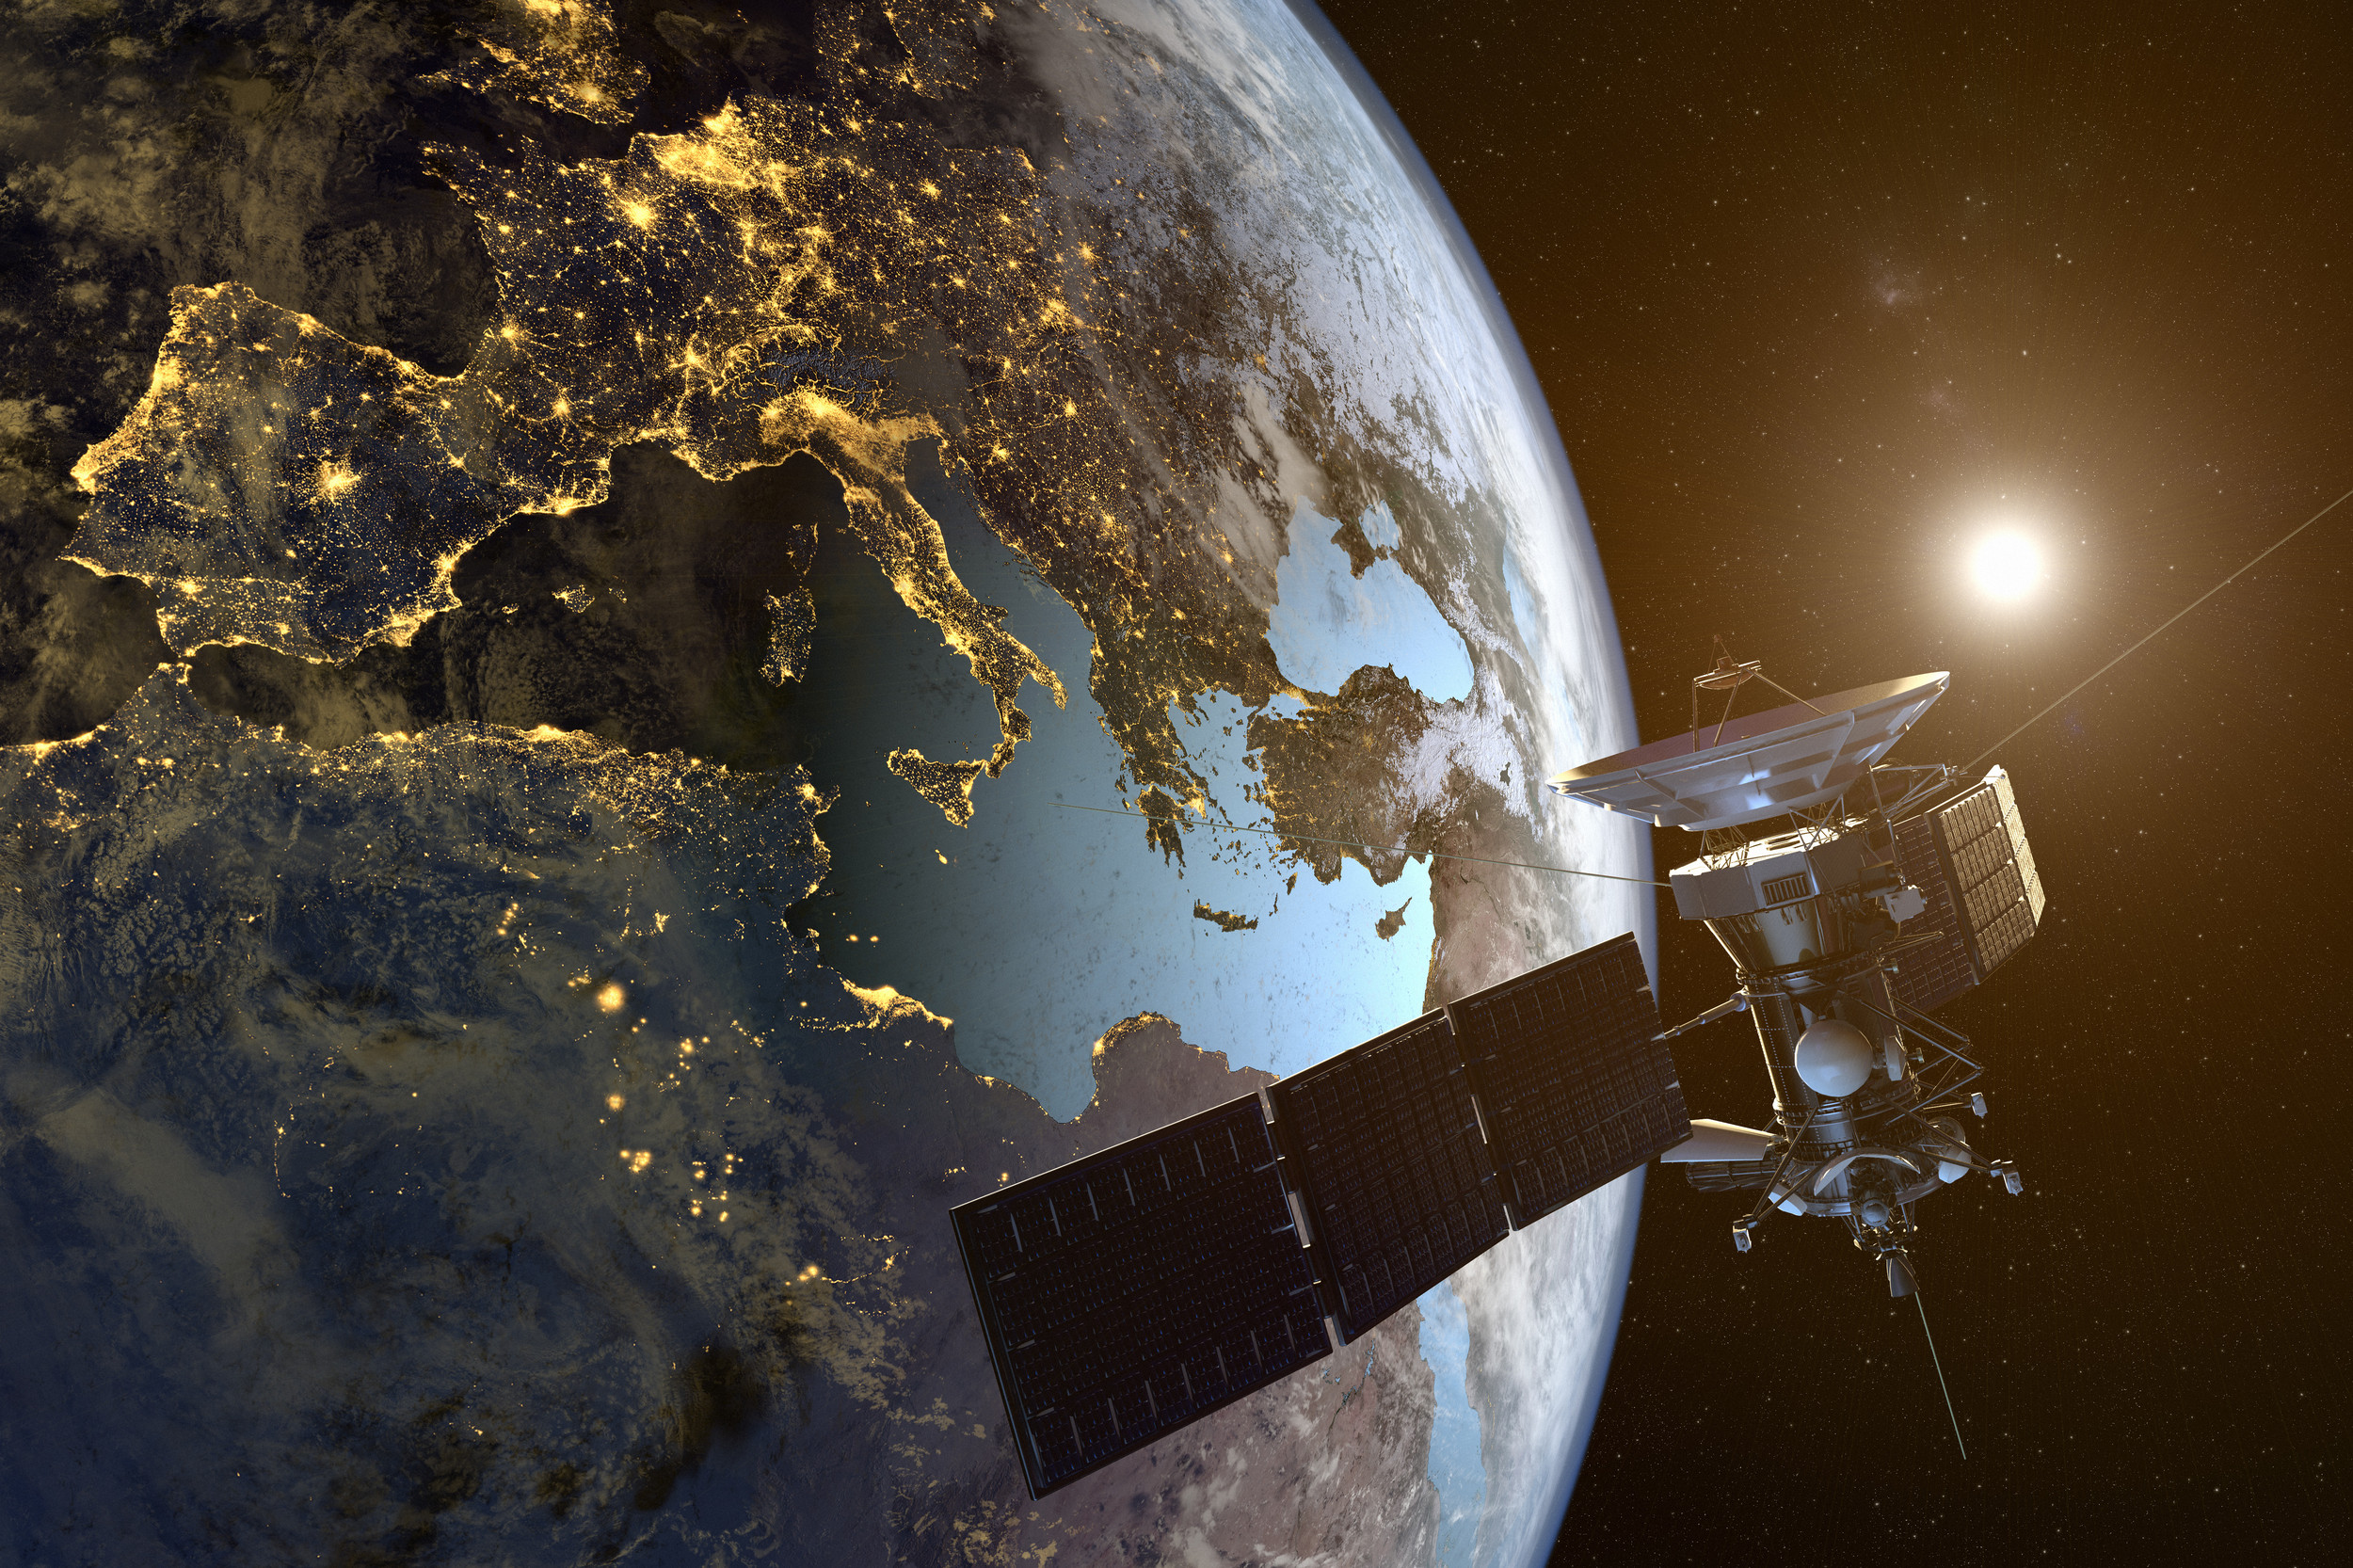 Commercial Satellites: Will They Be Military Targets?